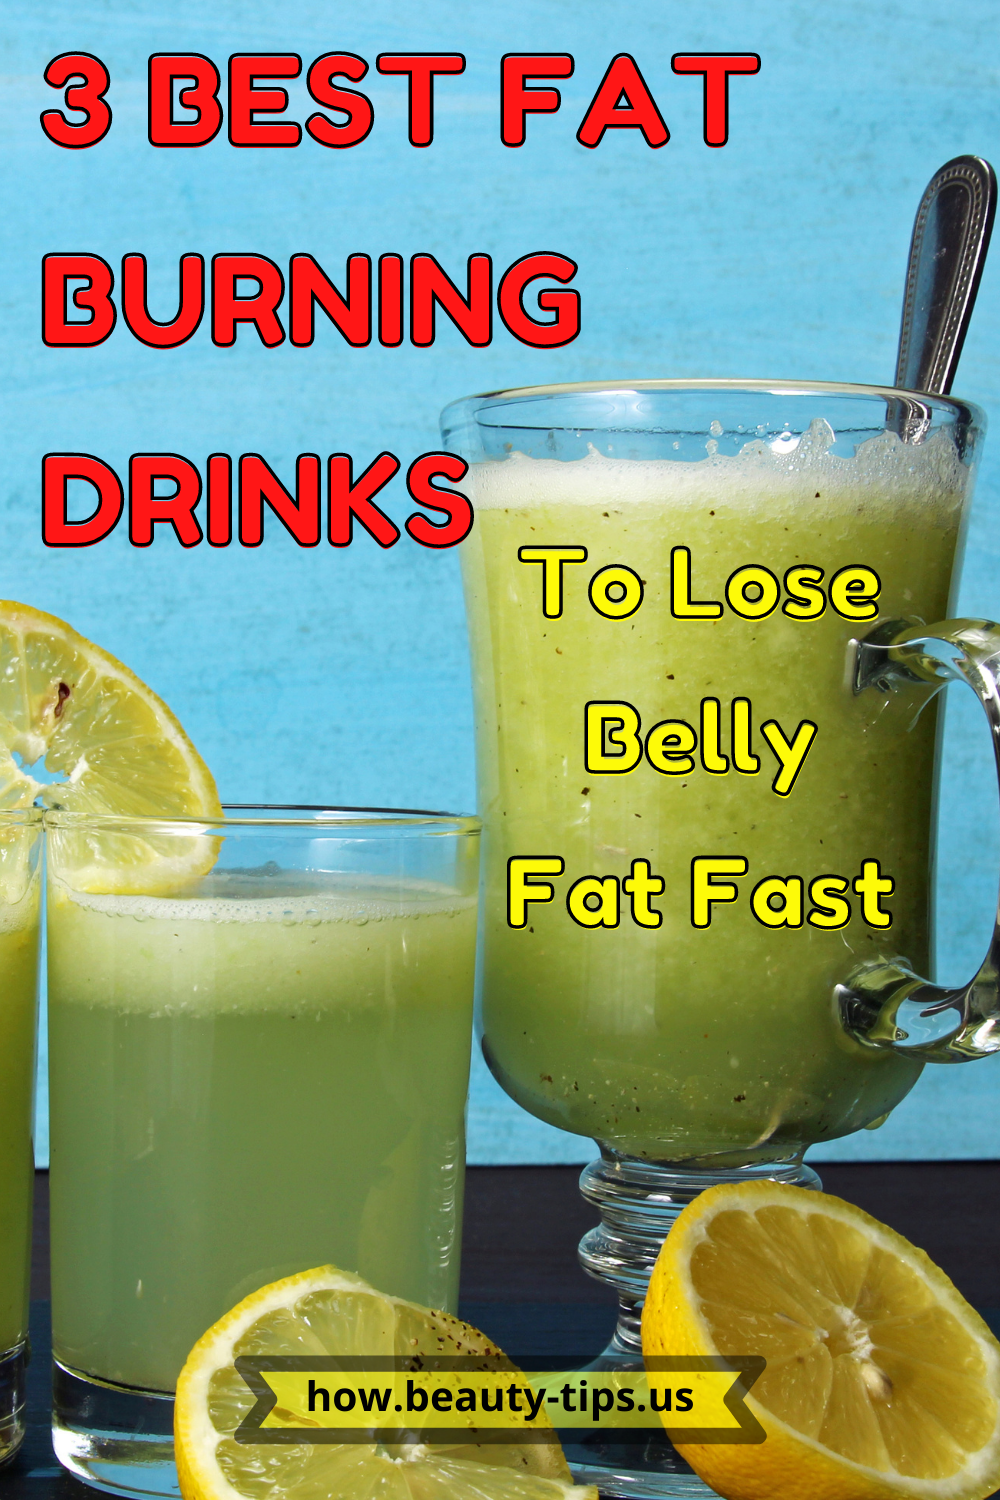 3 Best Fat Burning Drinks to Lose Belly Fat Fast